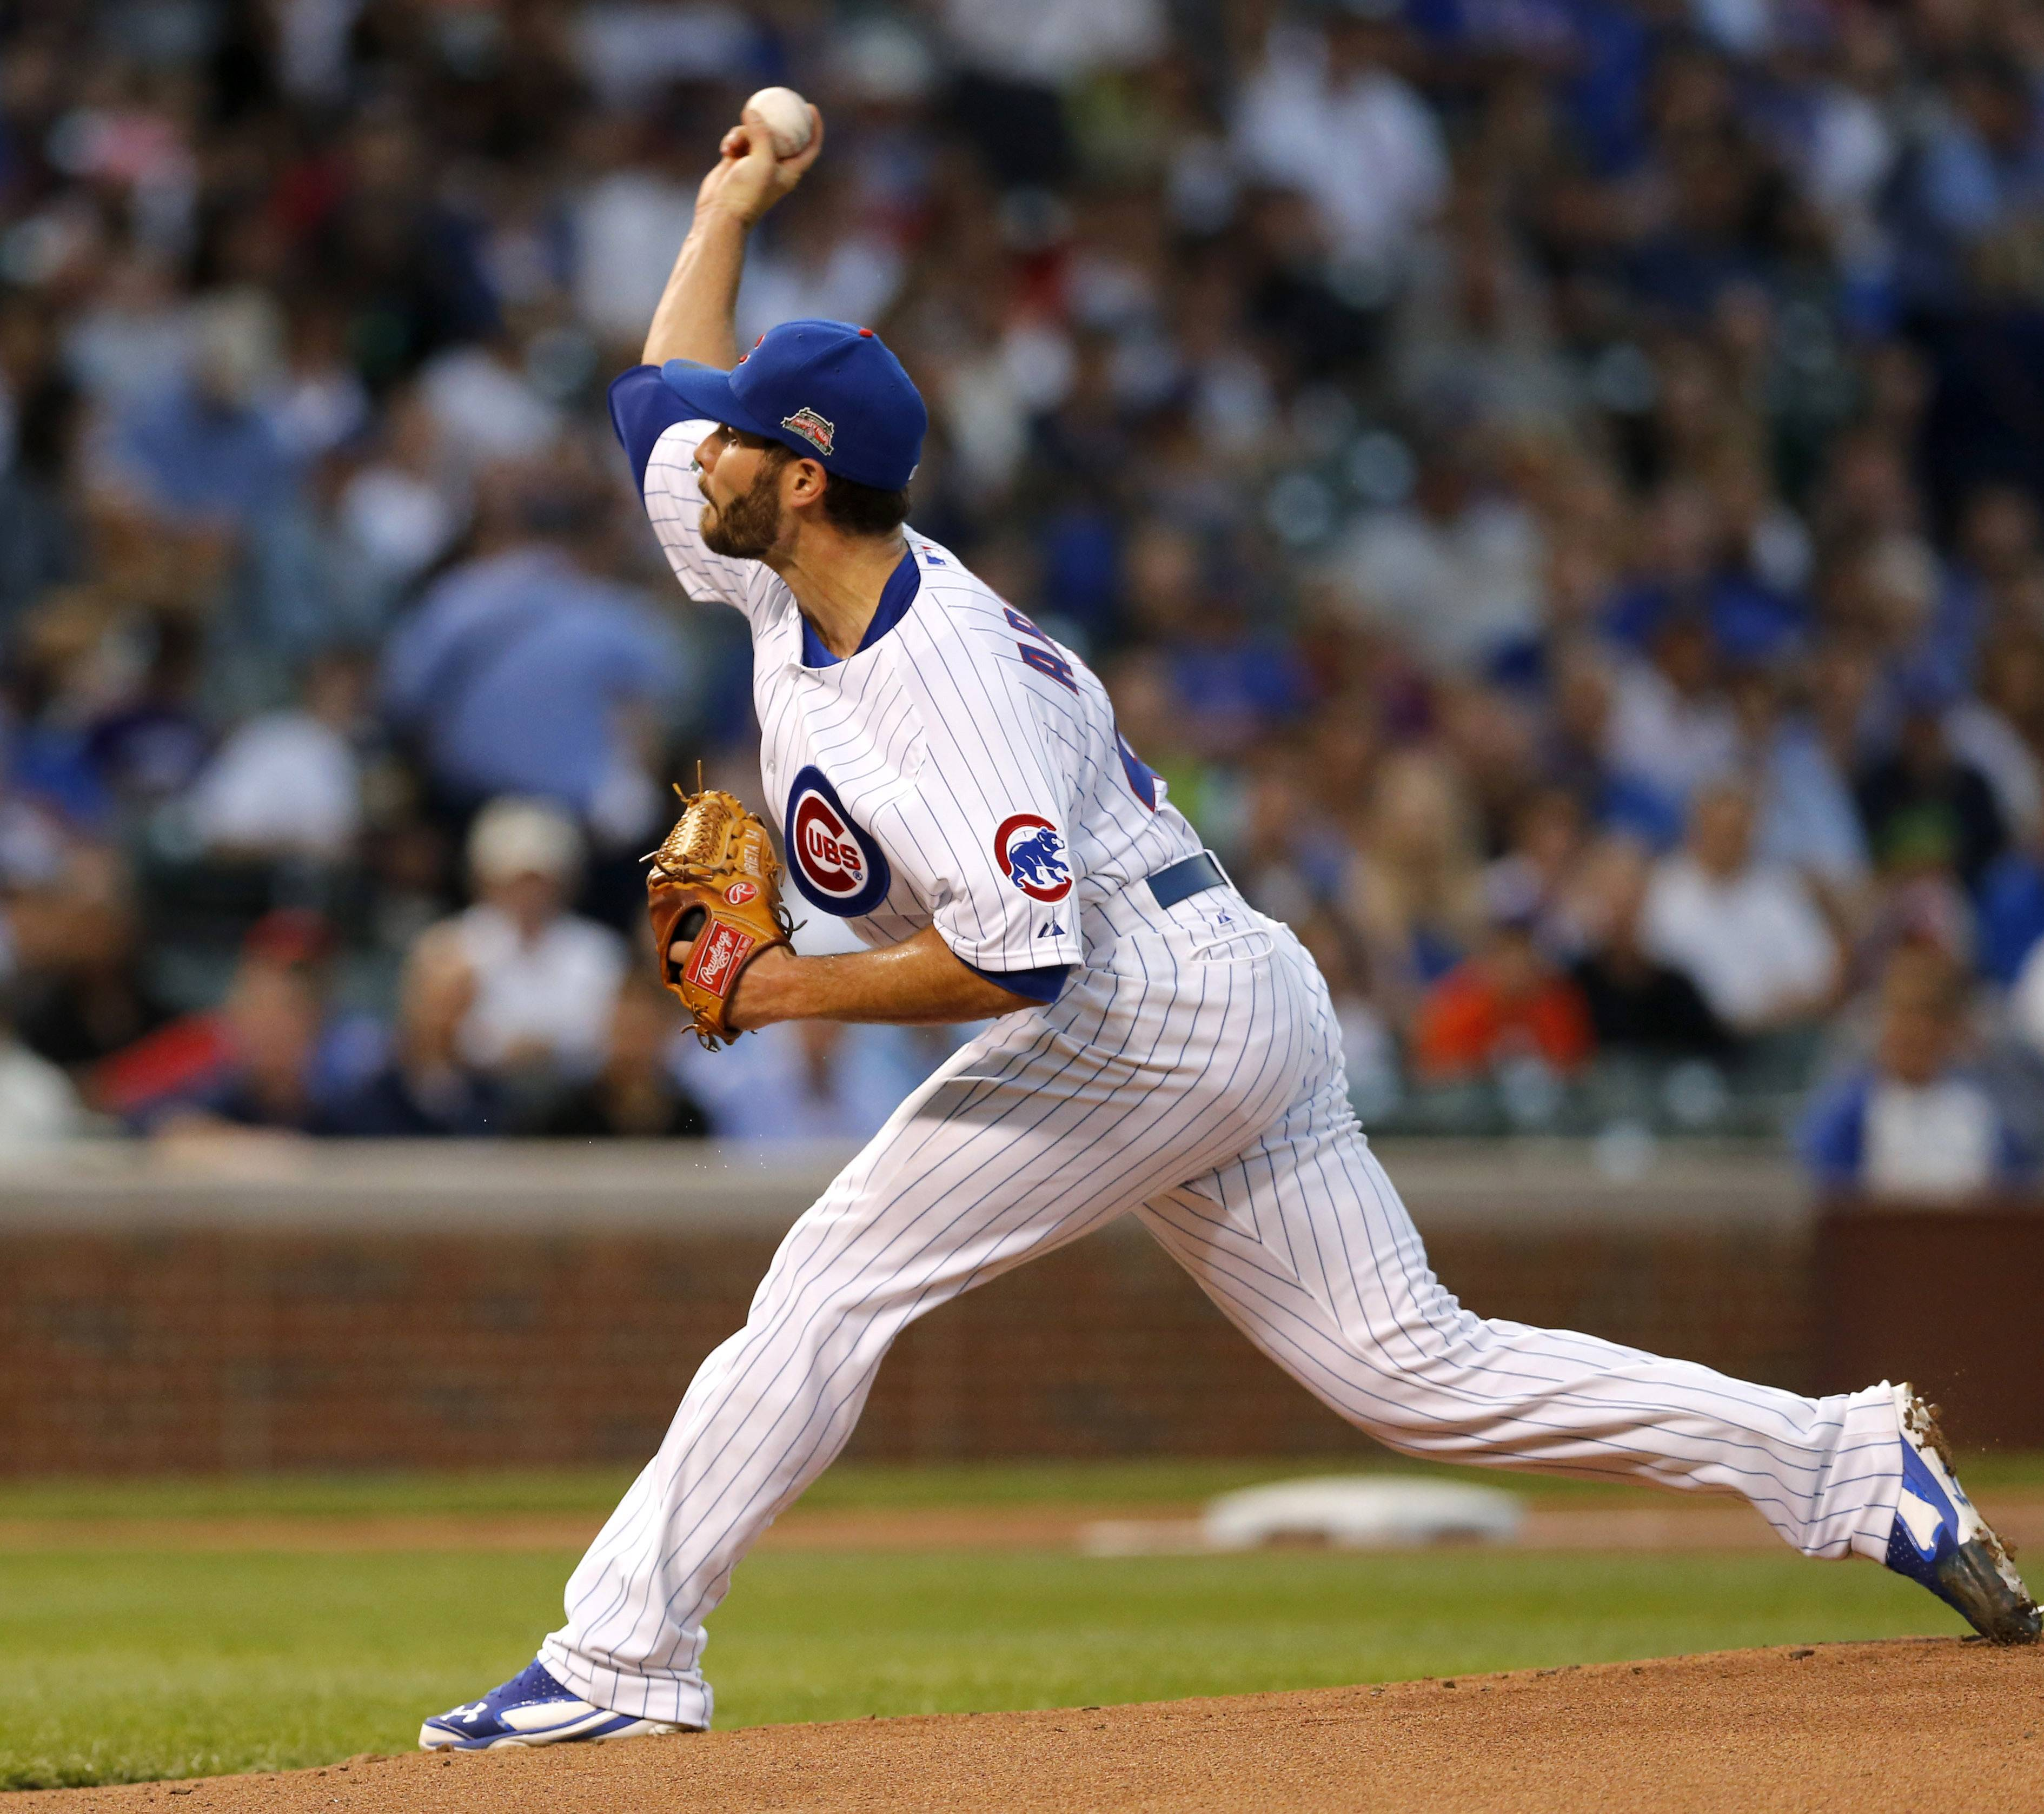 Cubs starting pitcher Jake Arrieta allowed only 2 runs on 5 hits in 7⅓ innings Monday night but took the loss against the Brewers.